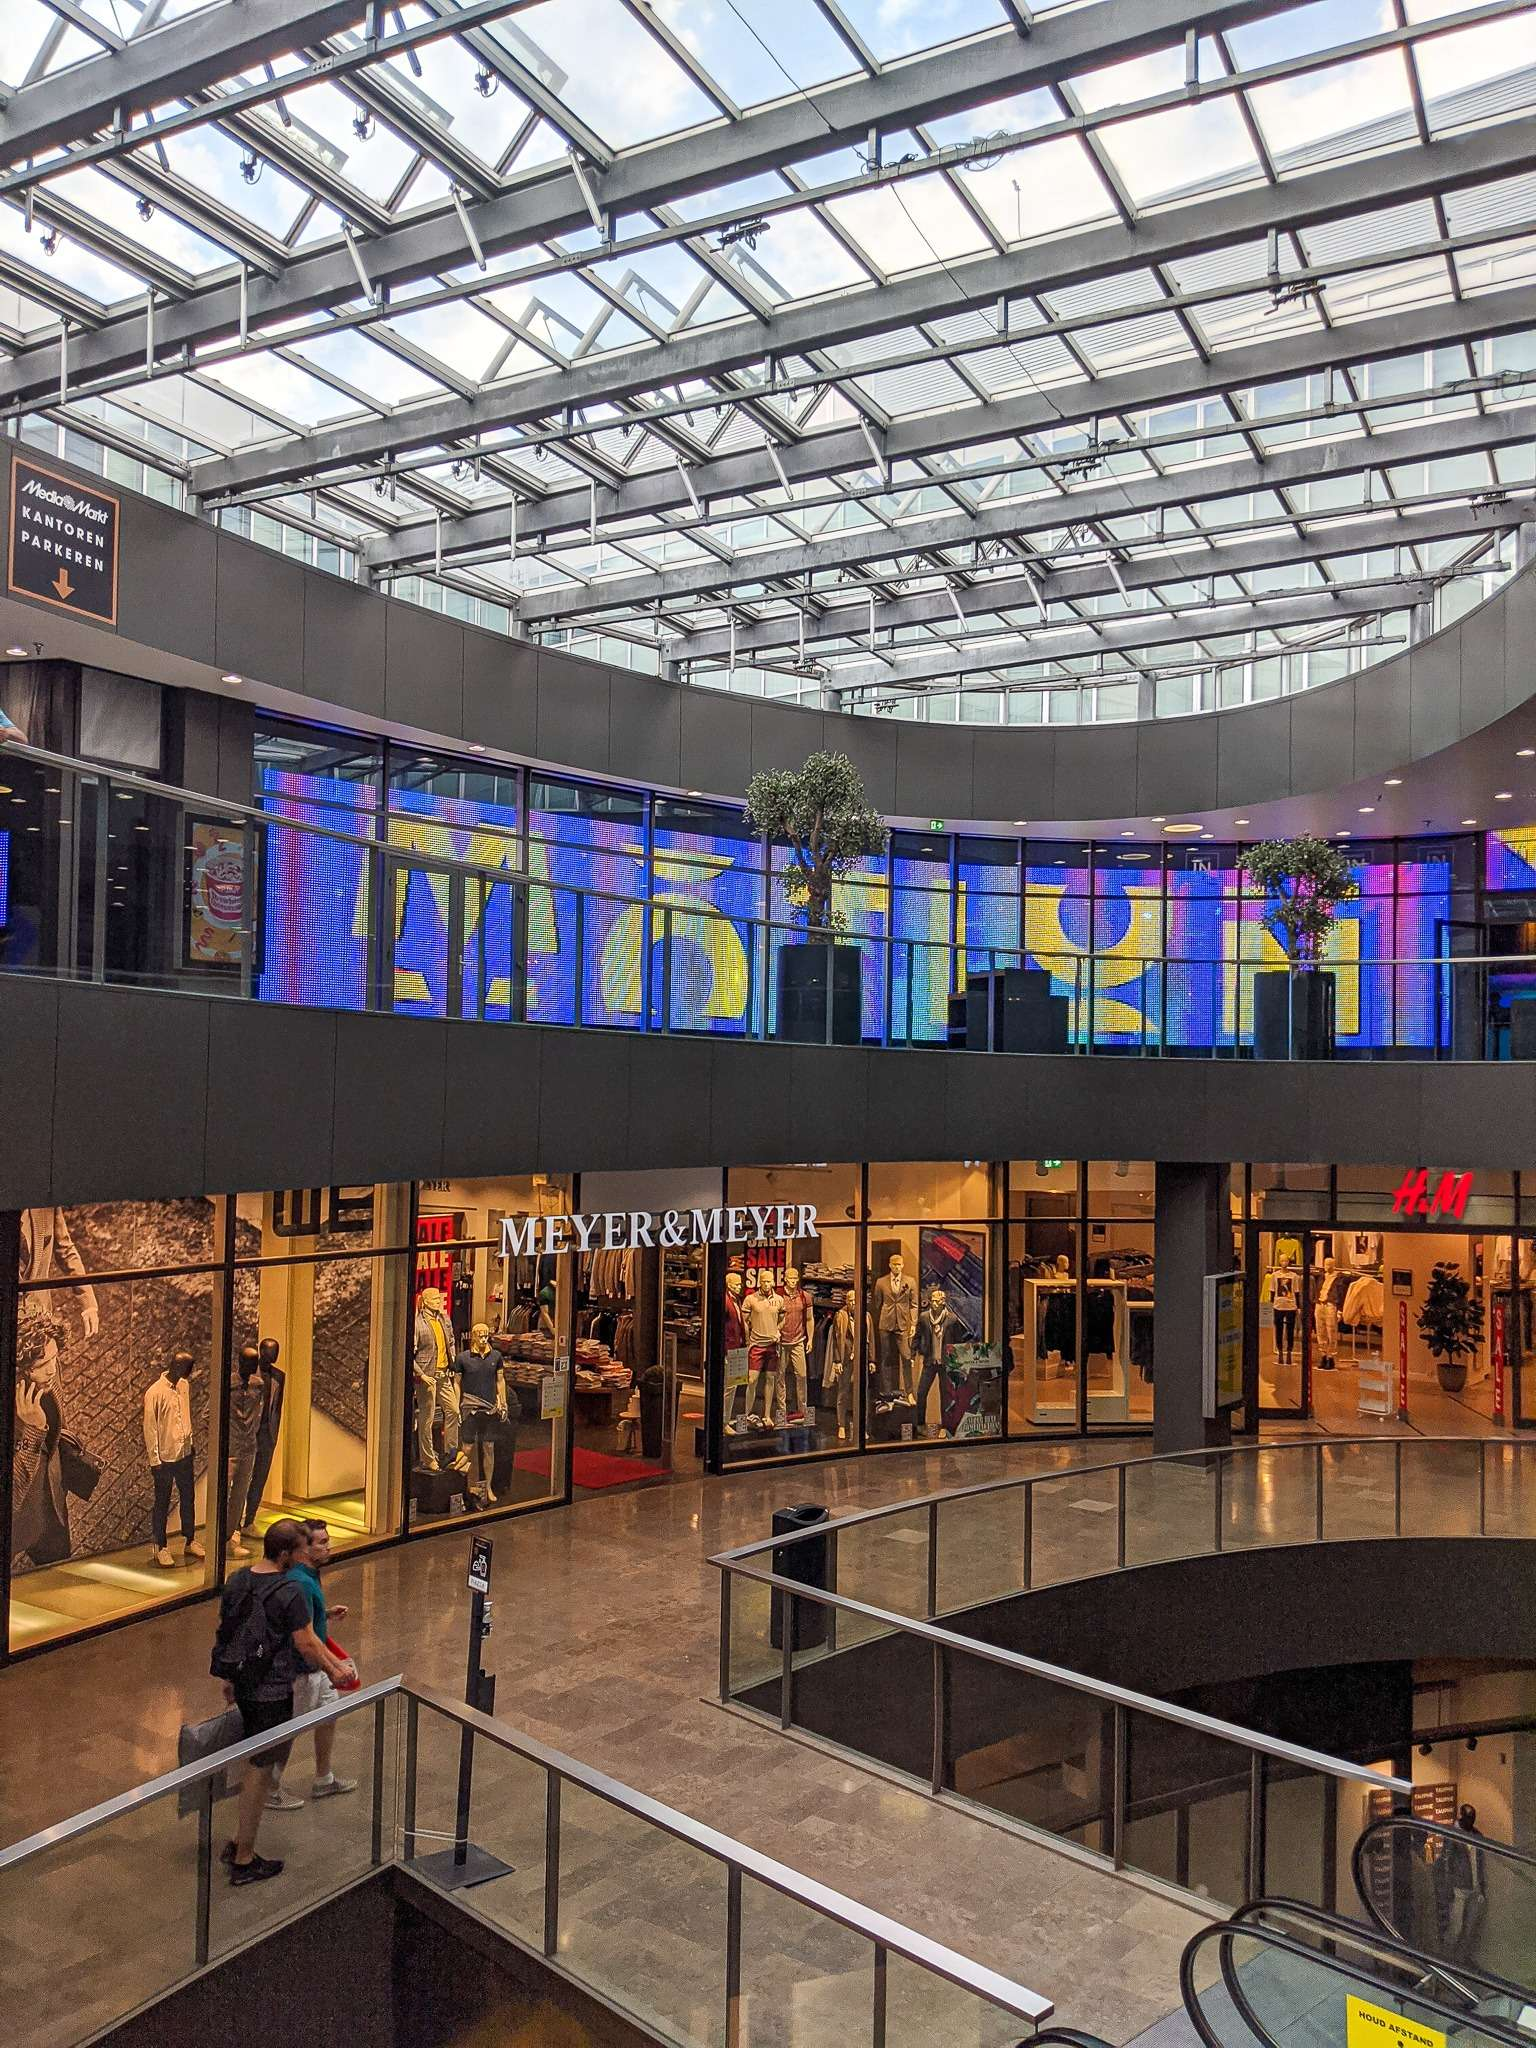 Inside a shopping mall in Eindhoven with glass roof and coloured lights inside the shops